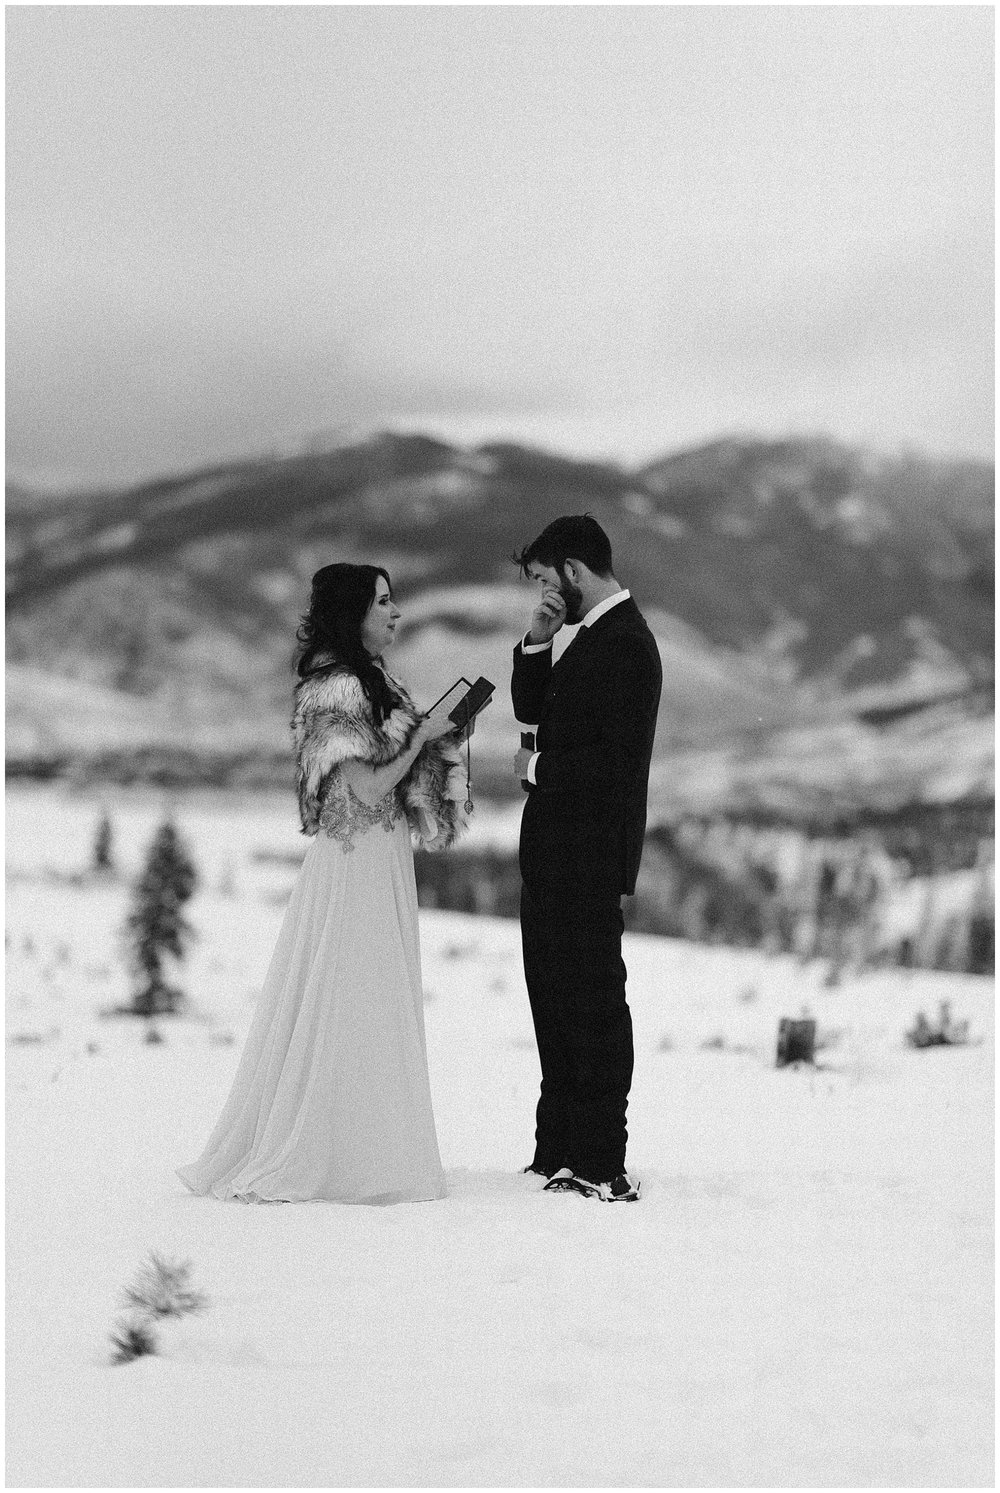 Marlayna and Austin had a winter elopement ceremony surrounded by the snowy Rocky Mountains at Sapphire Point in Dillon, Colorado. Photo by Adventure Instead, Maddie Mae Elopement Photographers.